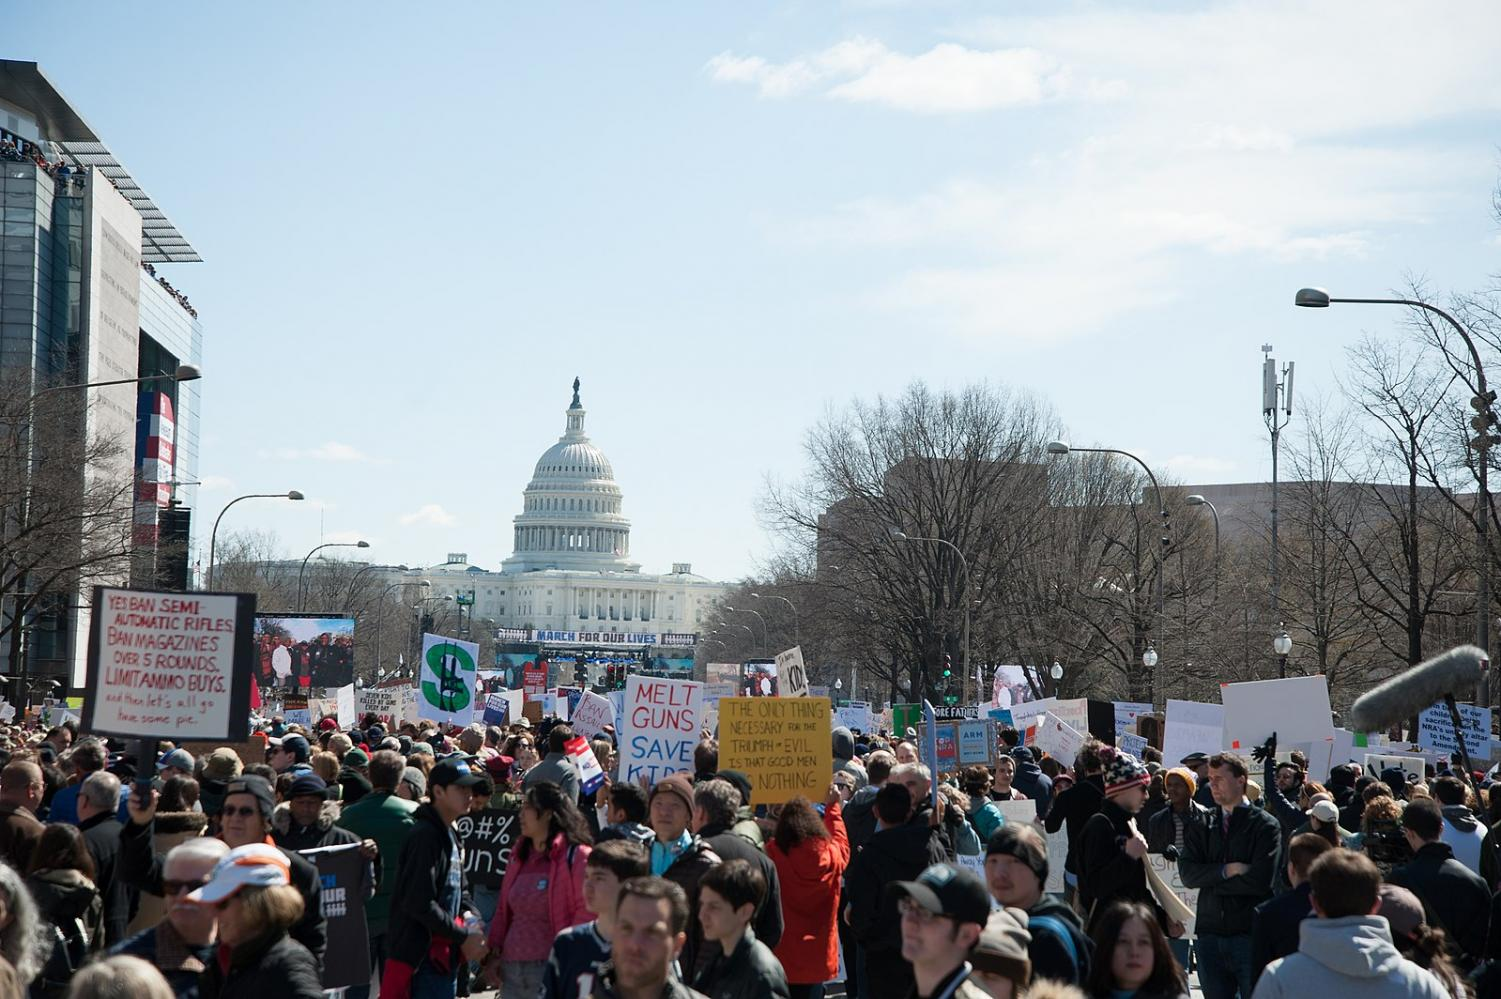 Demonstrators advocate for stricter gun laws and legislation at the 2018 March For Our Lives in Washington DC. Photo via Wikimedia Commons.